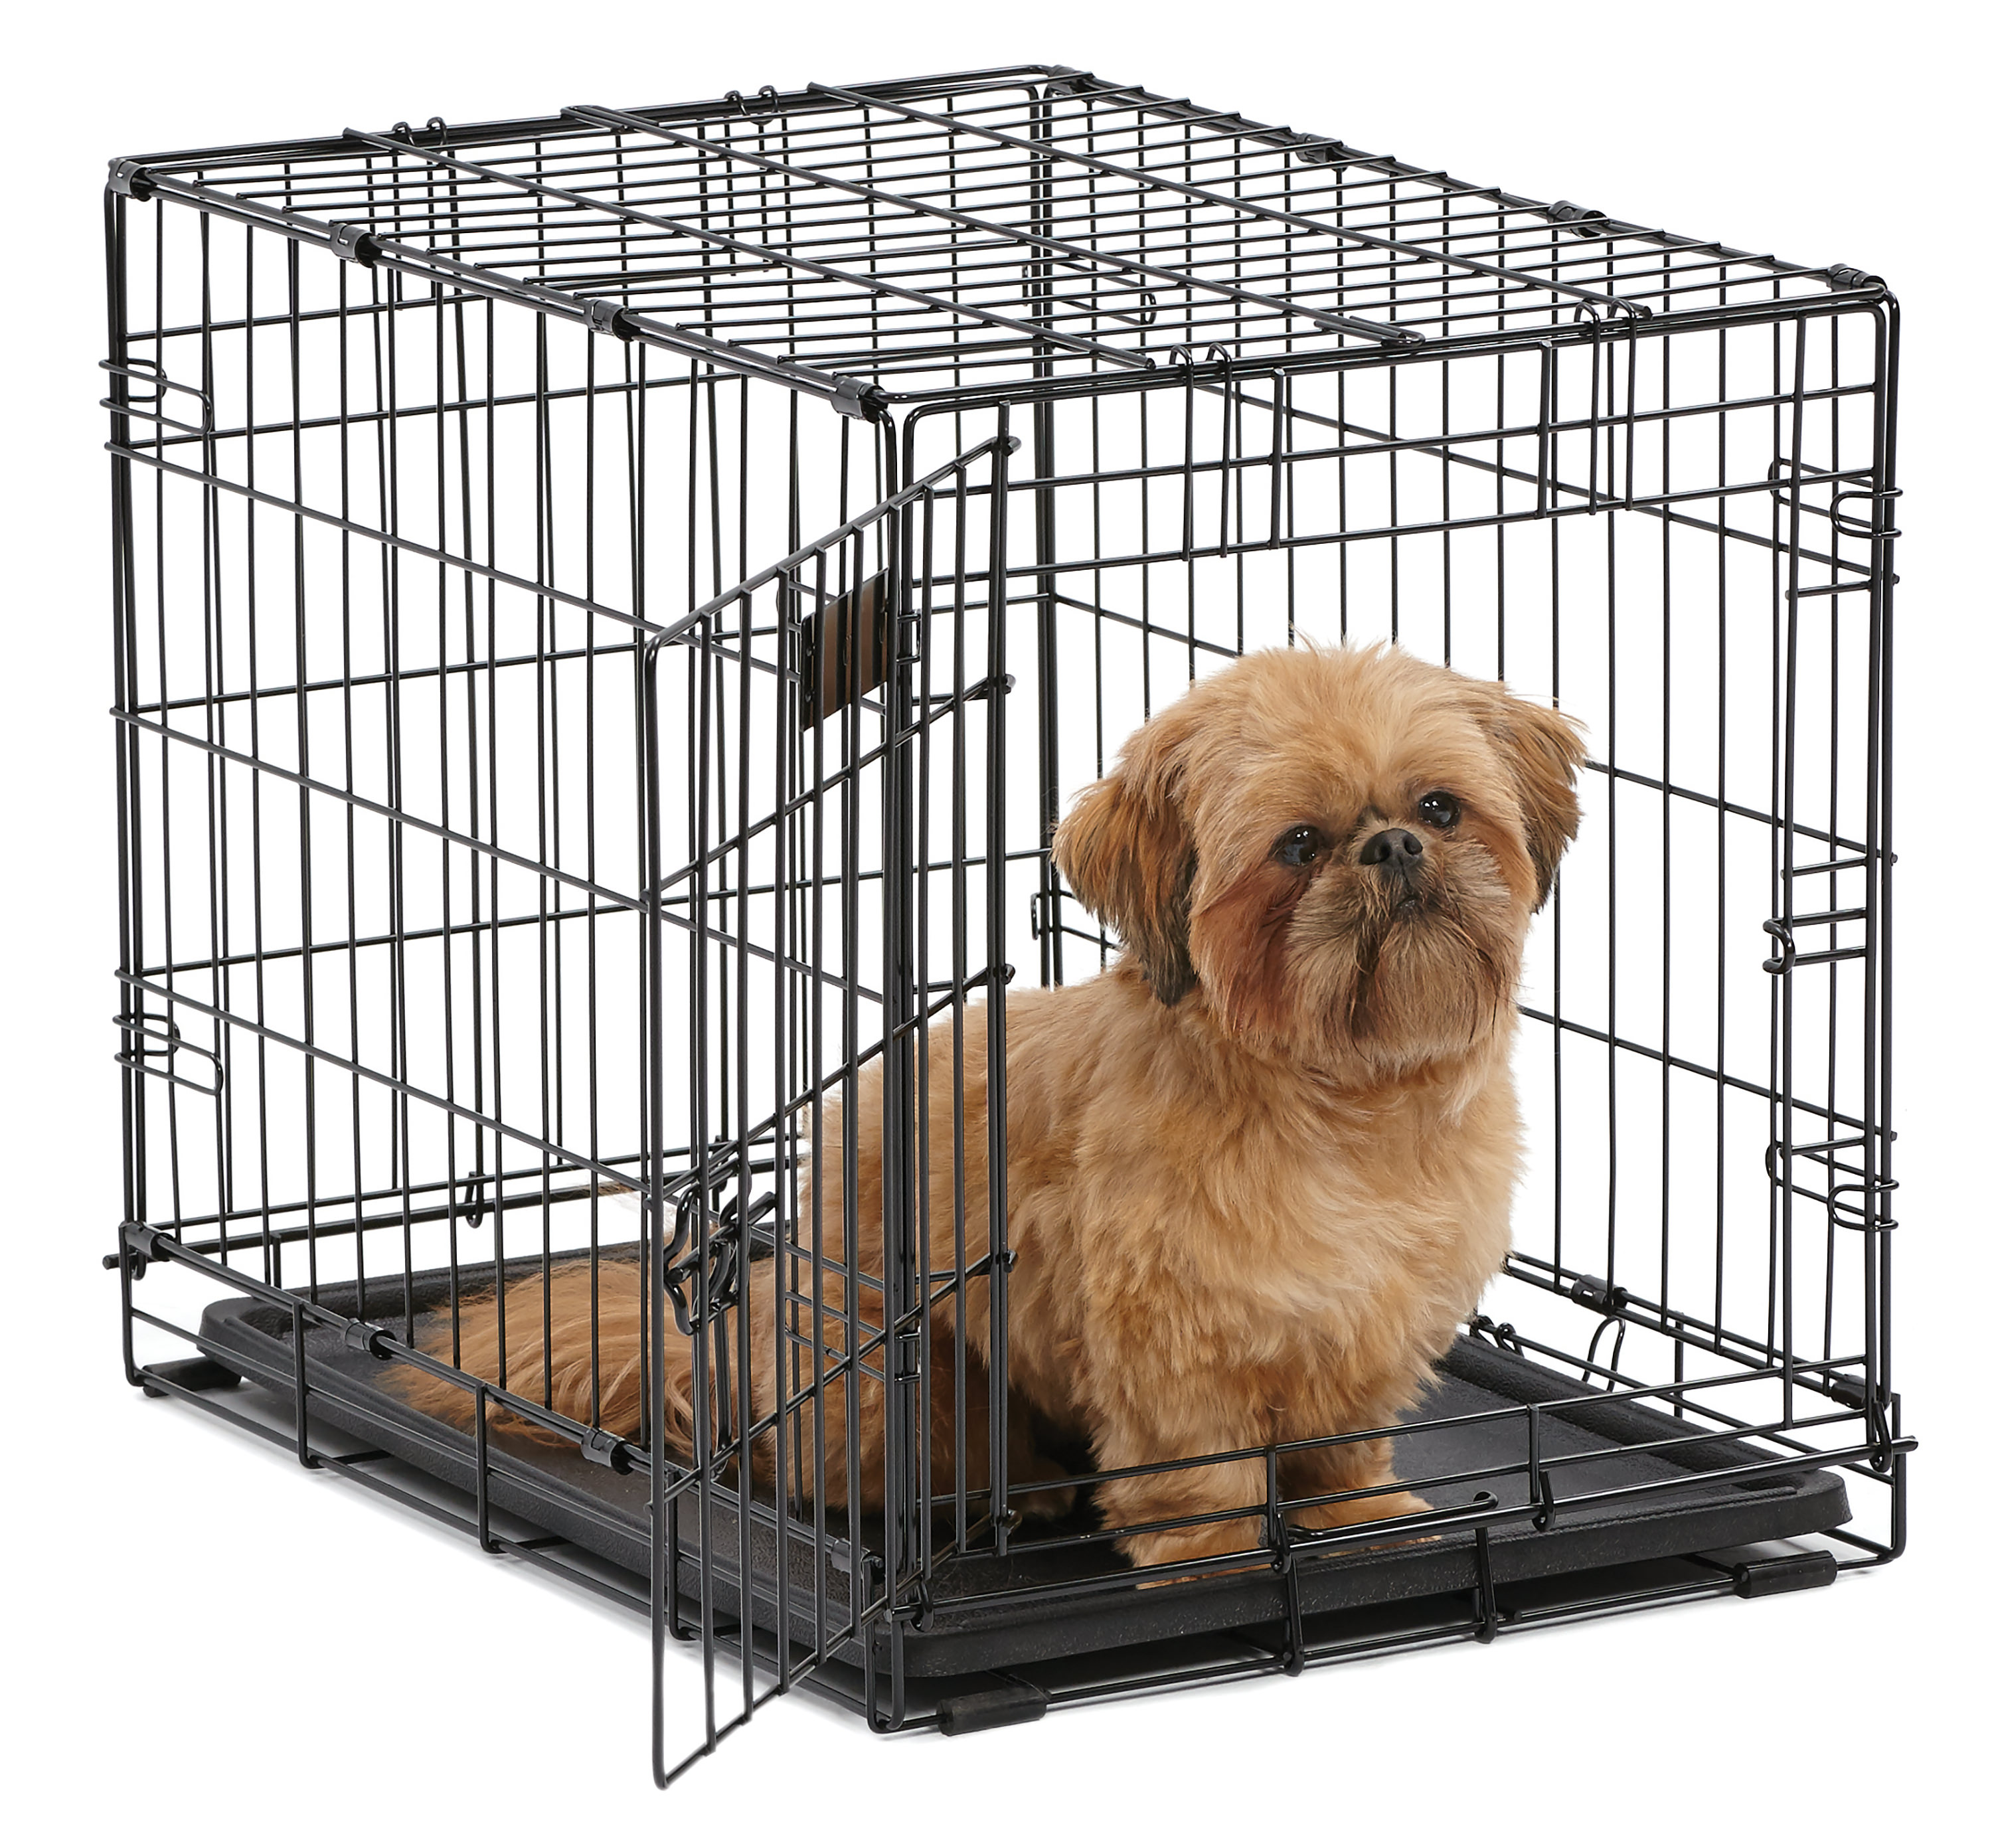 Single Door iCrate Metal Dog Crate, 24-Inch, Black